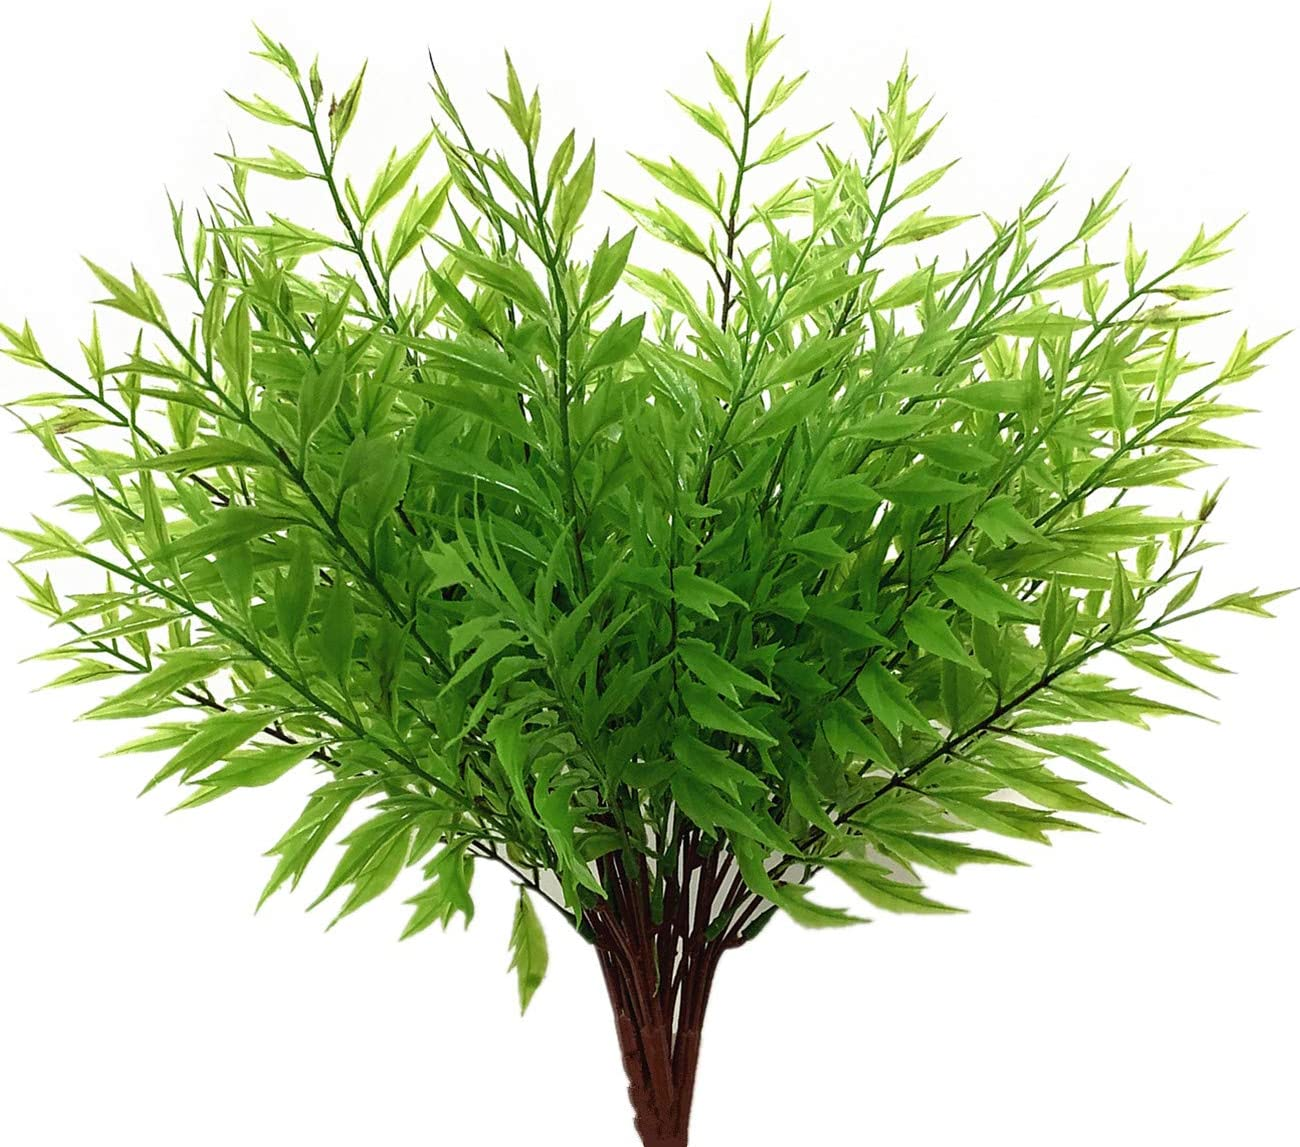 Artificial Shrubs Max 57% OFF Bushes CATTREE Plastic Fern Plants Grass Fake Bombing free shipping